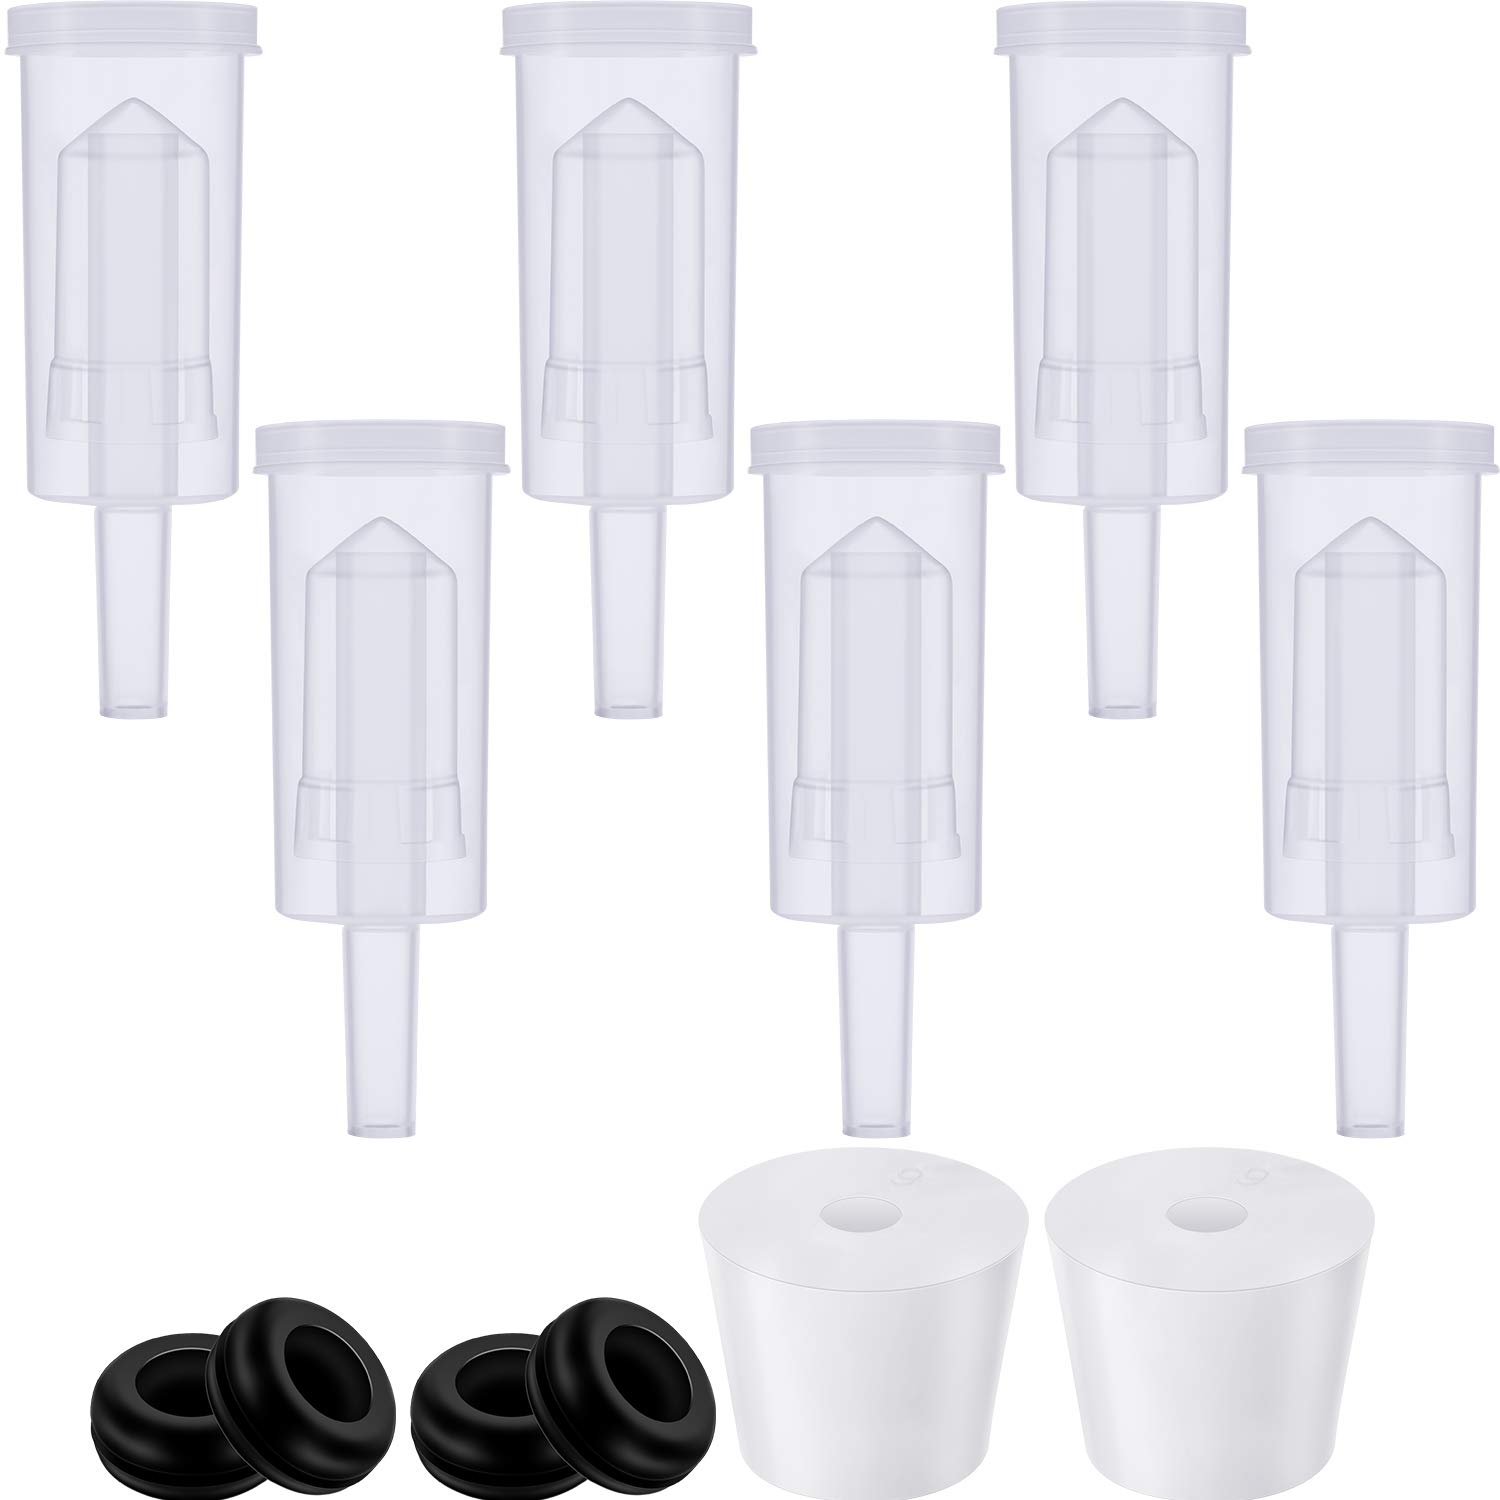 3-Piece BPA-Free Plastic Airlock Bubble Airlocks for Fermentation, Black Silicone Fermenter Lid Grommets 5/8'' OD, 3/8'' ID with #6 Hole Rubber Airlock Stopper Plugs for Beer Wine Sauerkraut (12 Pieces) by Mudder